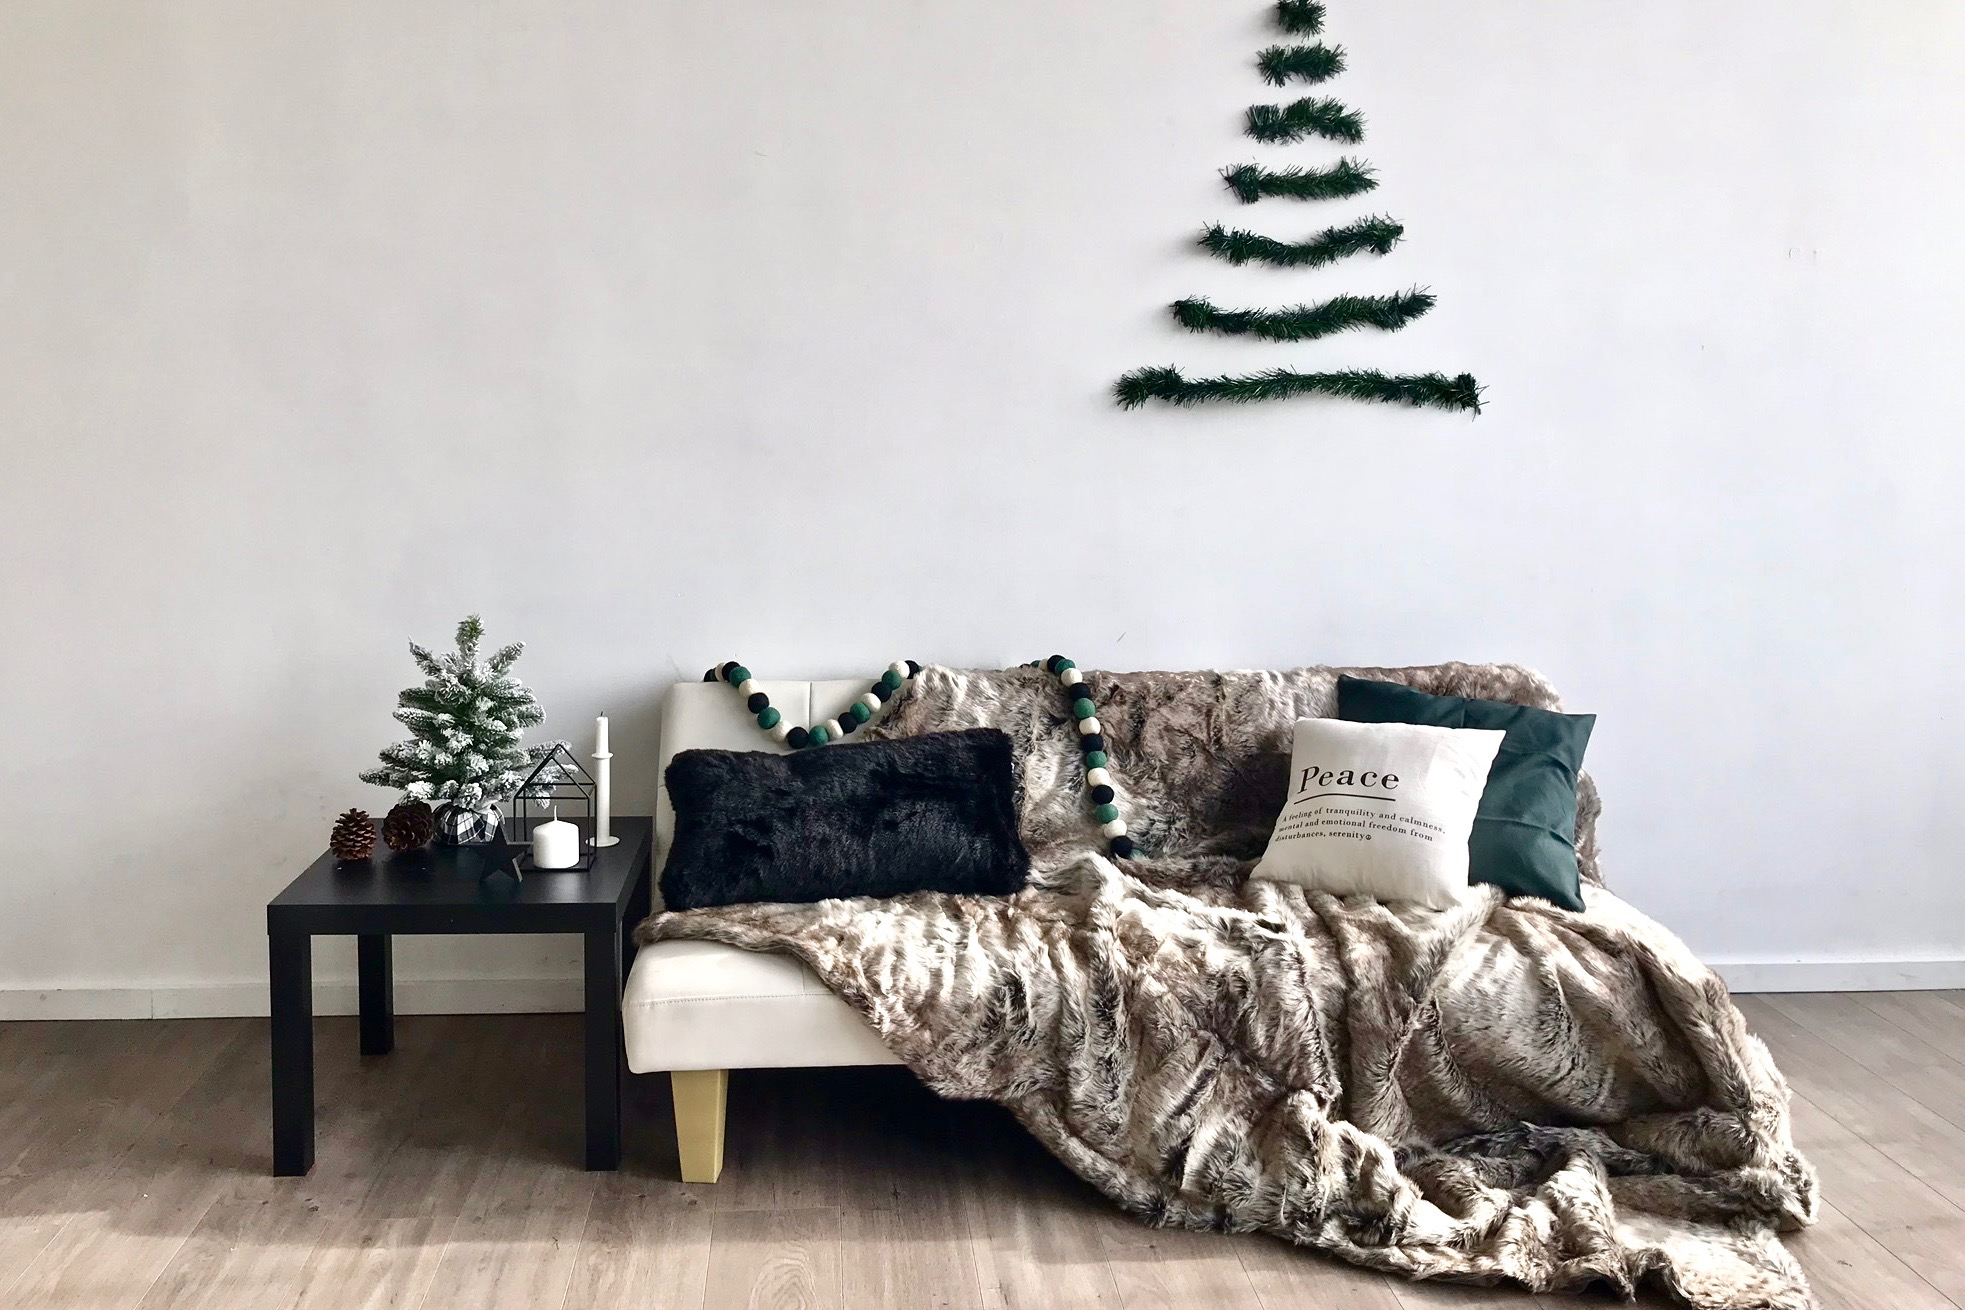 The styled set for this family Christmas mini session.